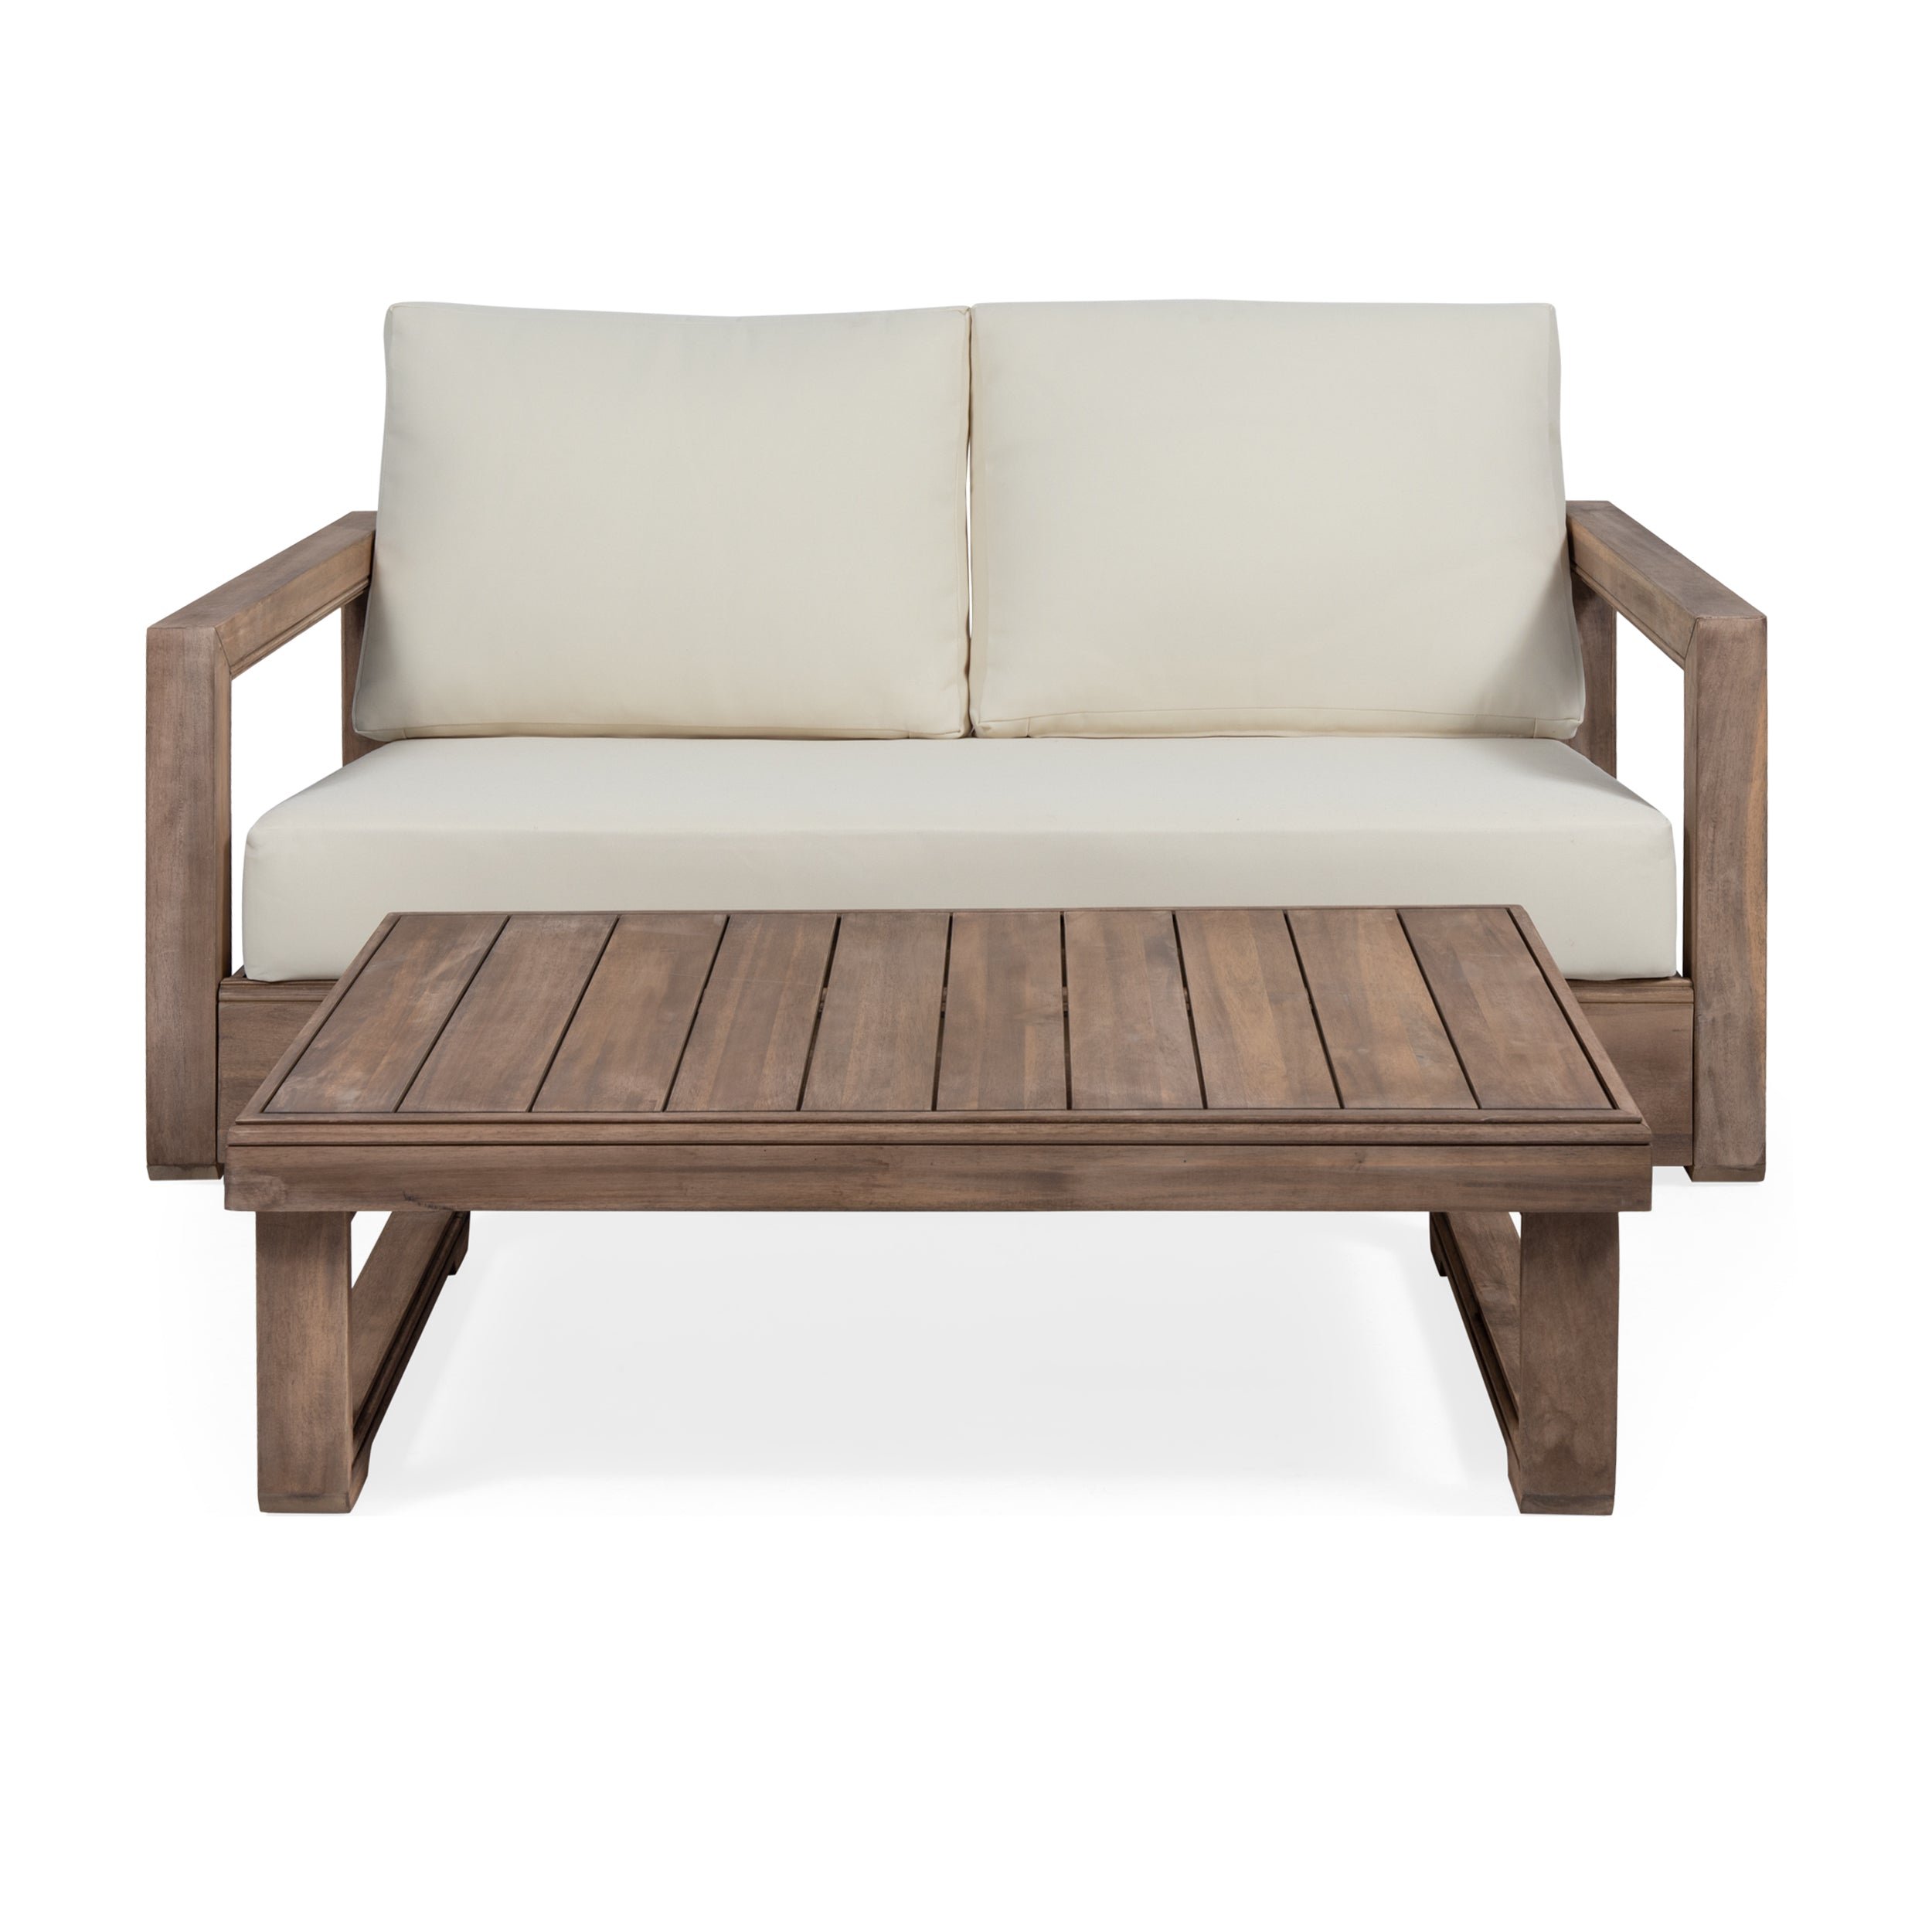 Andrae Outdoor Acacia Wood Loveseat Set with Coffee Table Default Title